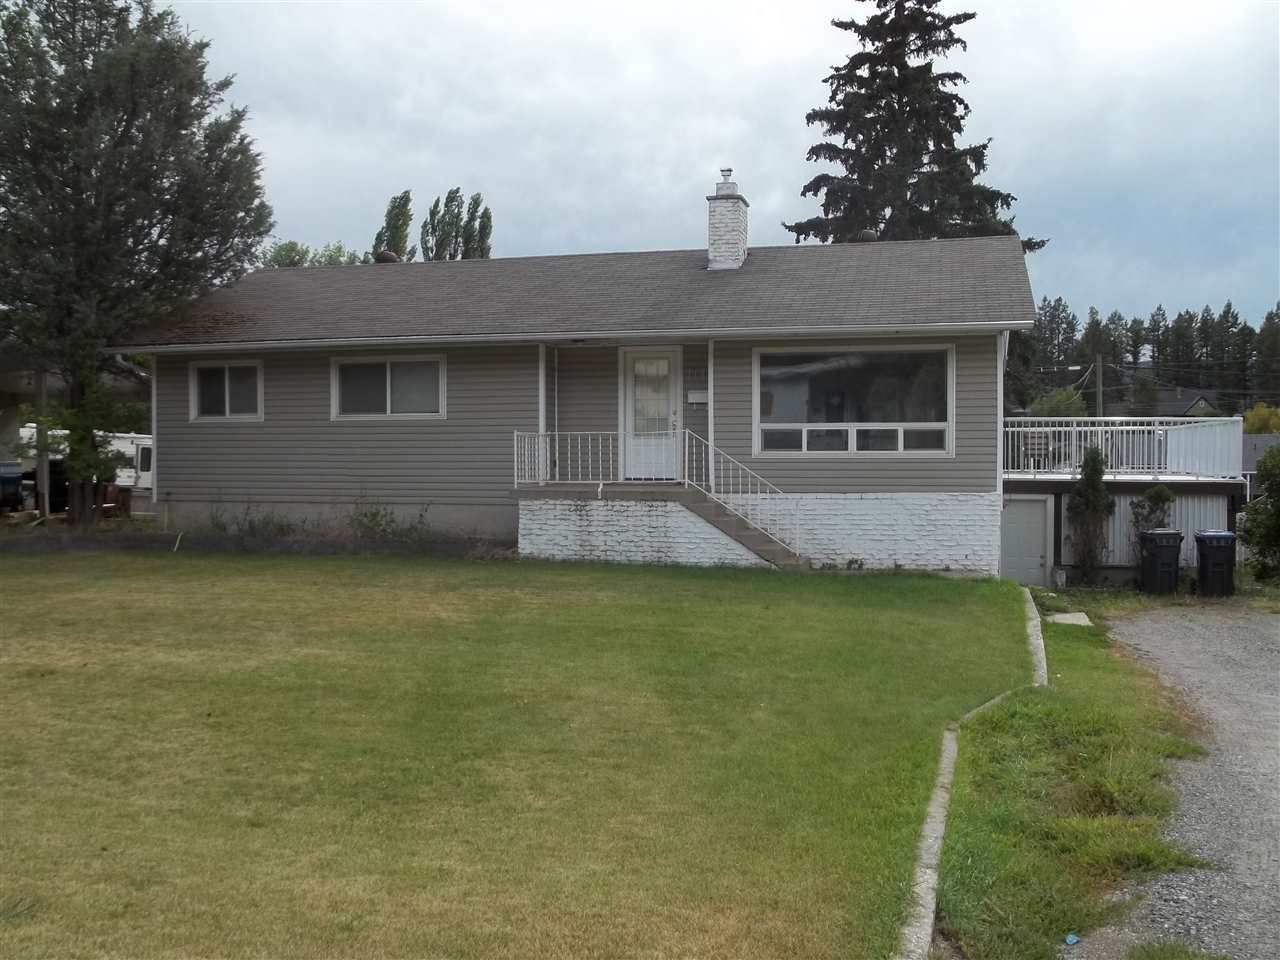 Main Photo: 717 N 10TH Avenue in Williams Lake: Williams Lake - City House for sale (Williams Lake (Zone 27))  : MLS®# R2398768